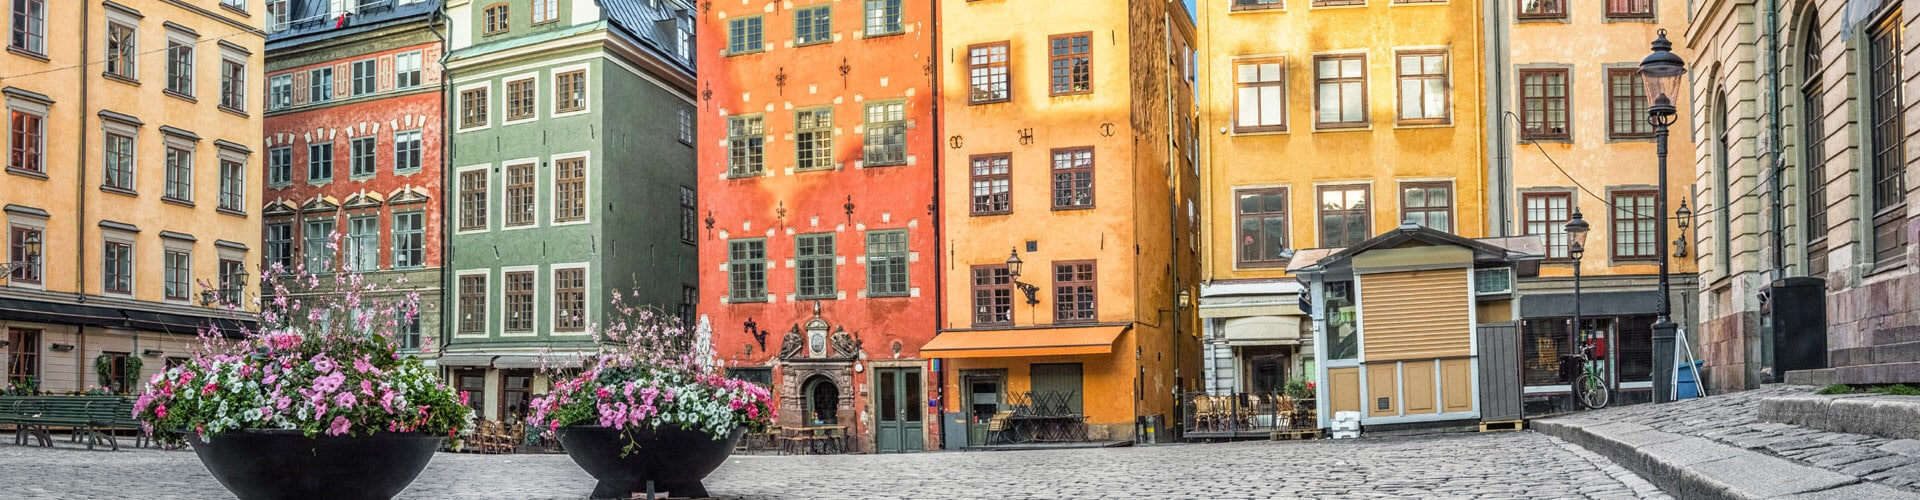 Stockholm, Sweden: The City of Cleanliness